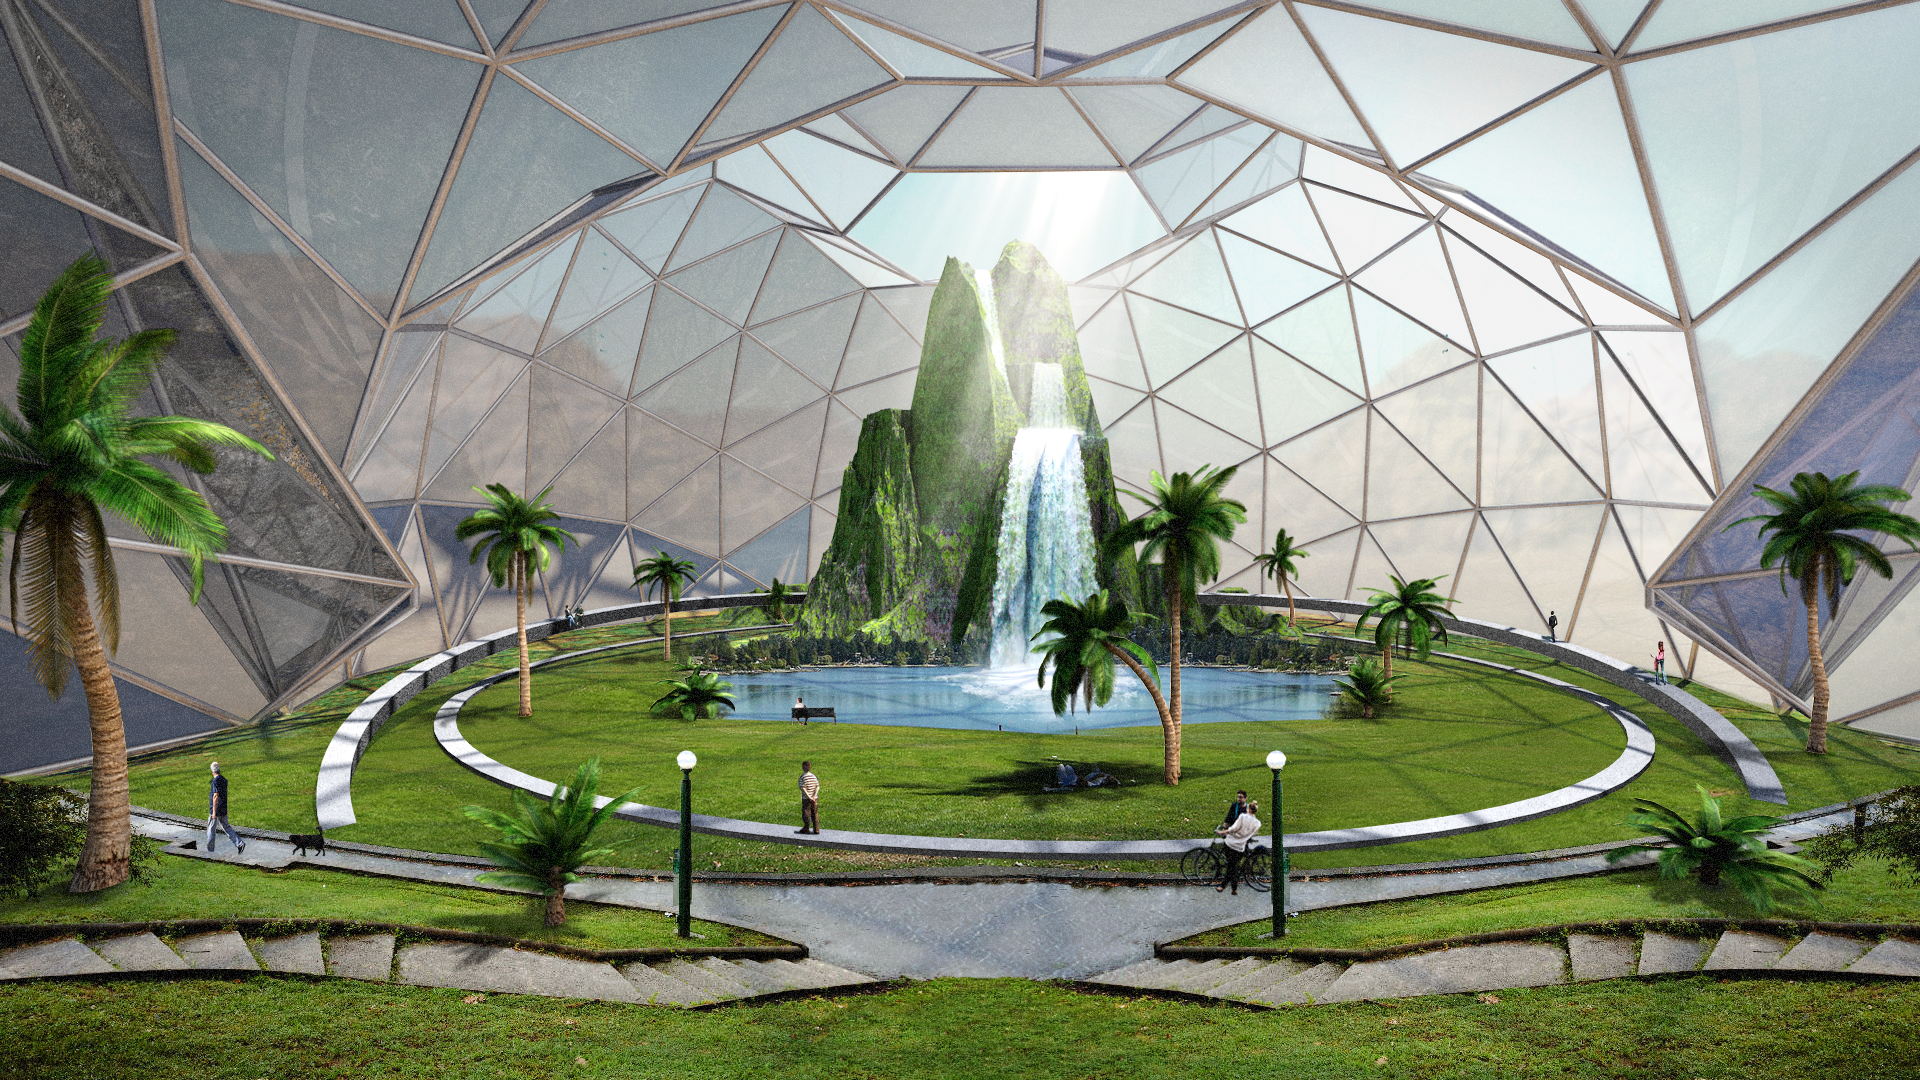 Avocados_Dome_Interior_v003_A.jpg